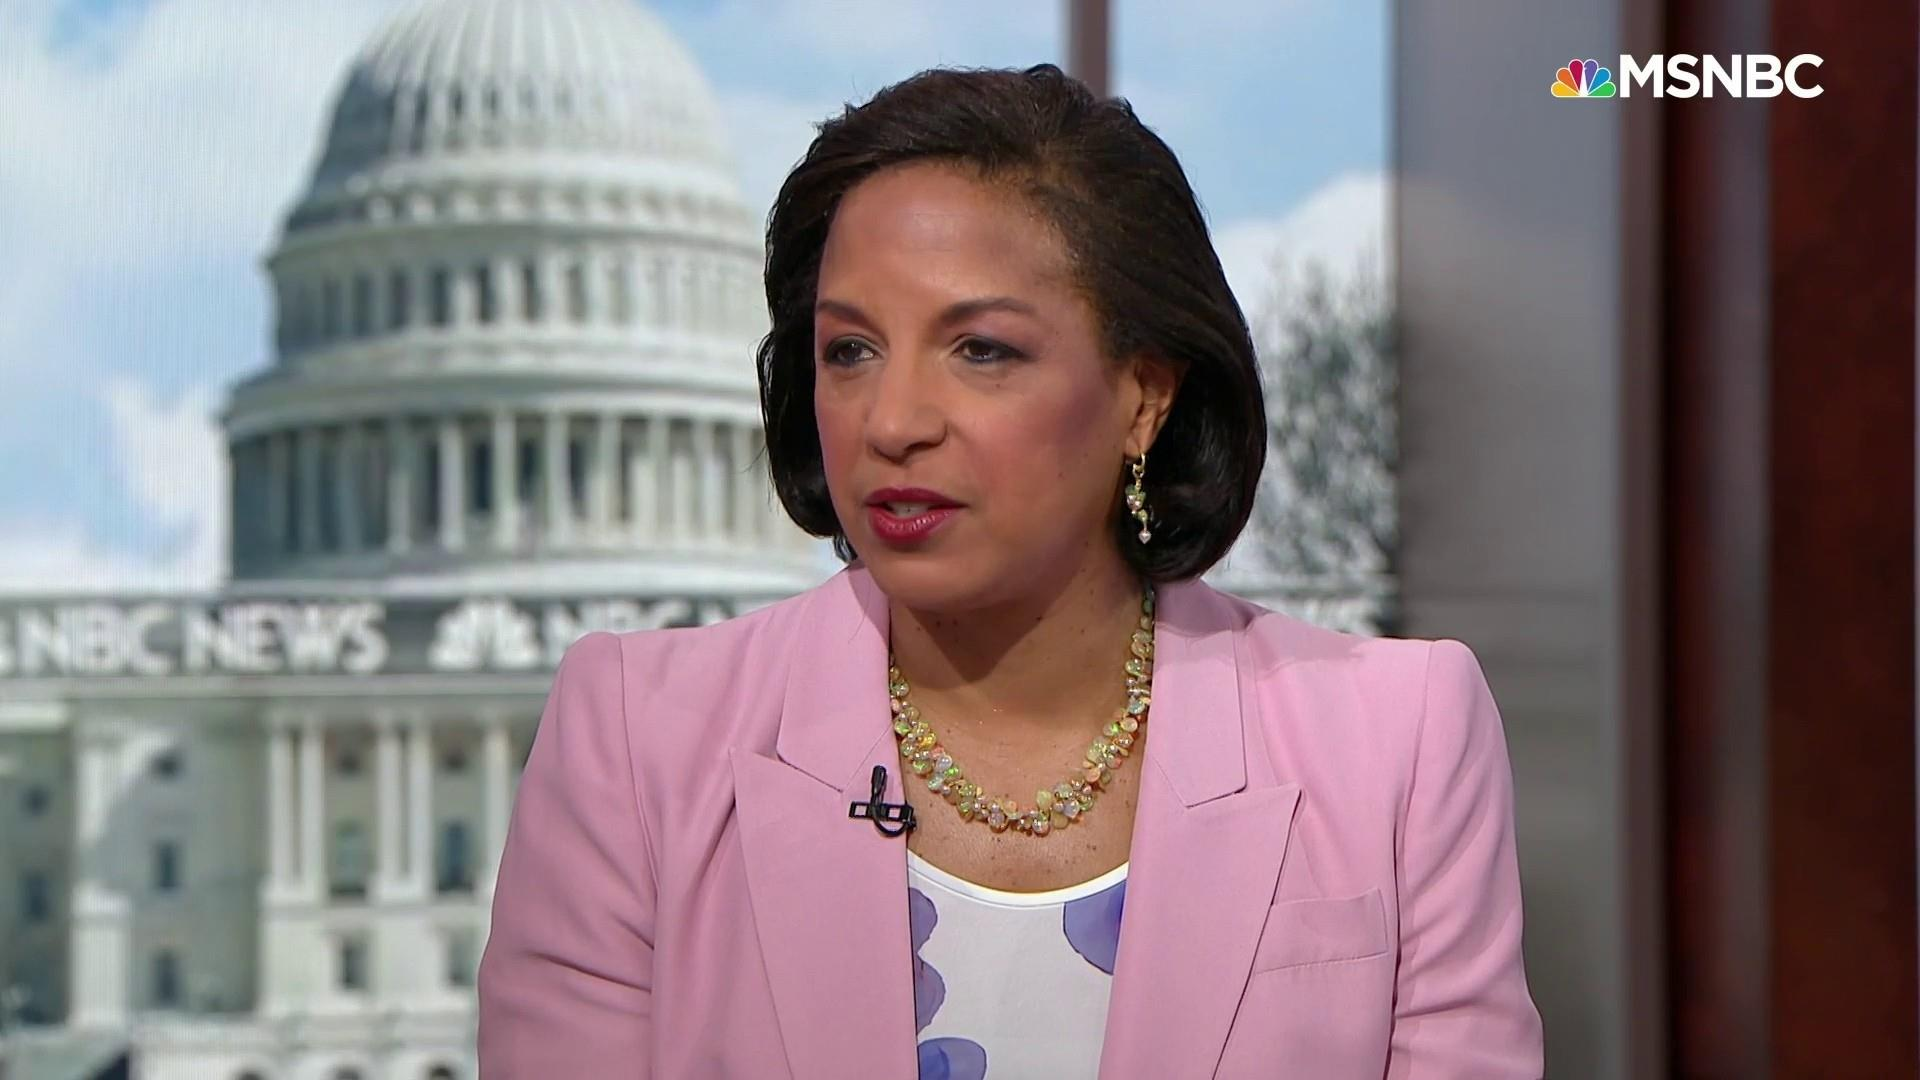 Susan Rice: Trump's 'despicable lies' about Obama show his 'extreme weakness and insecurity'